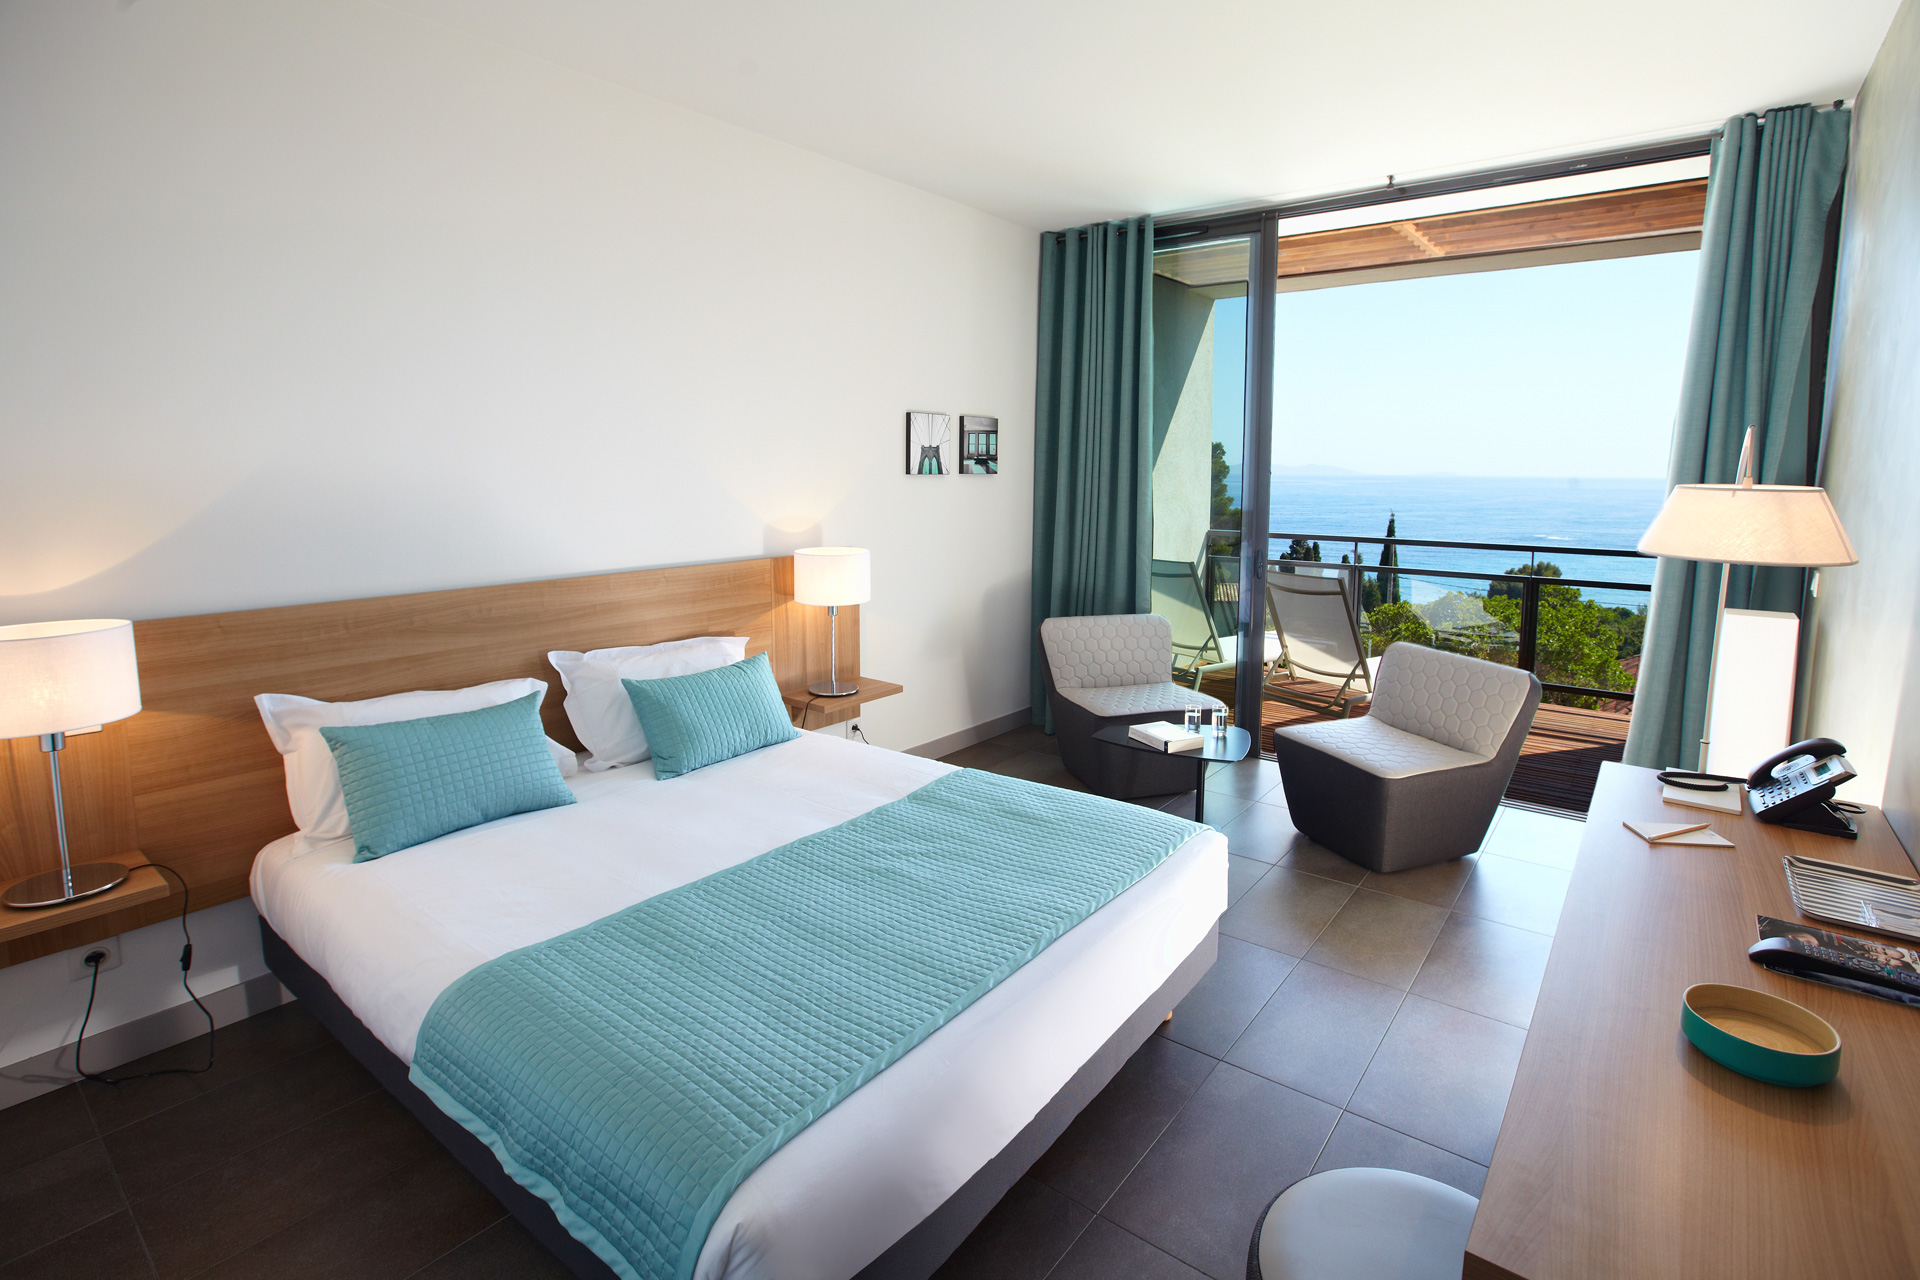 Les chambres hotel rayol canadel sur mer les terrasses for Photo a la chambre